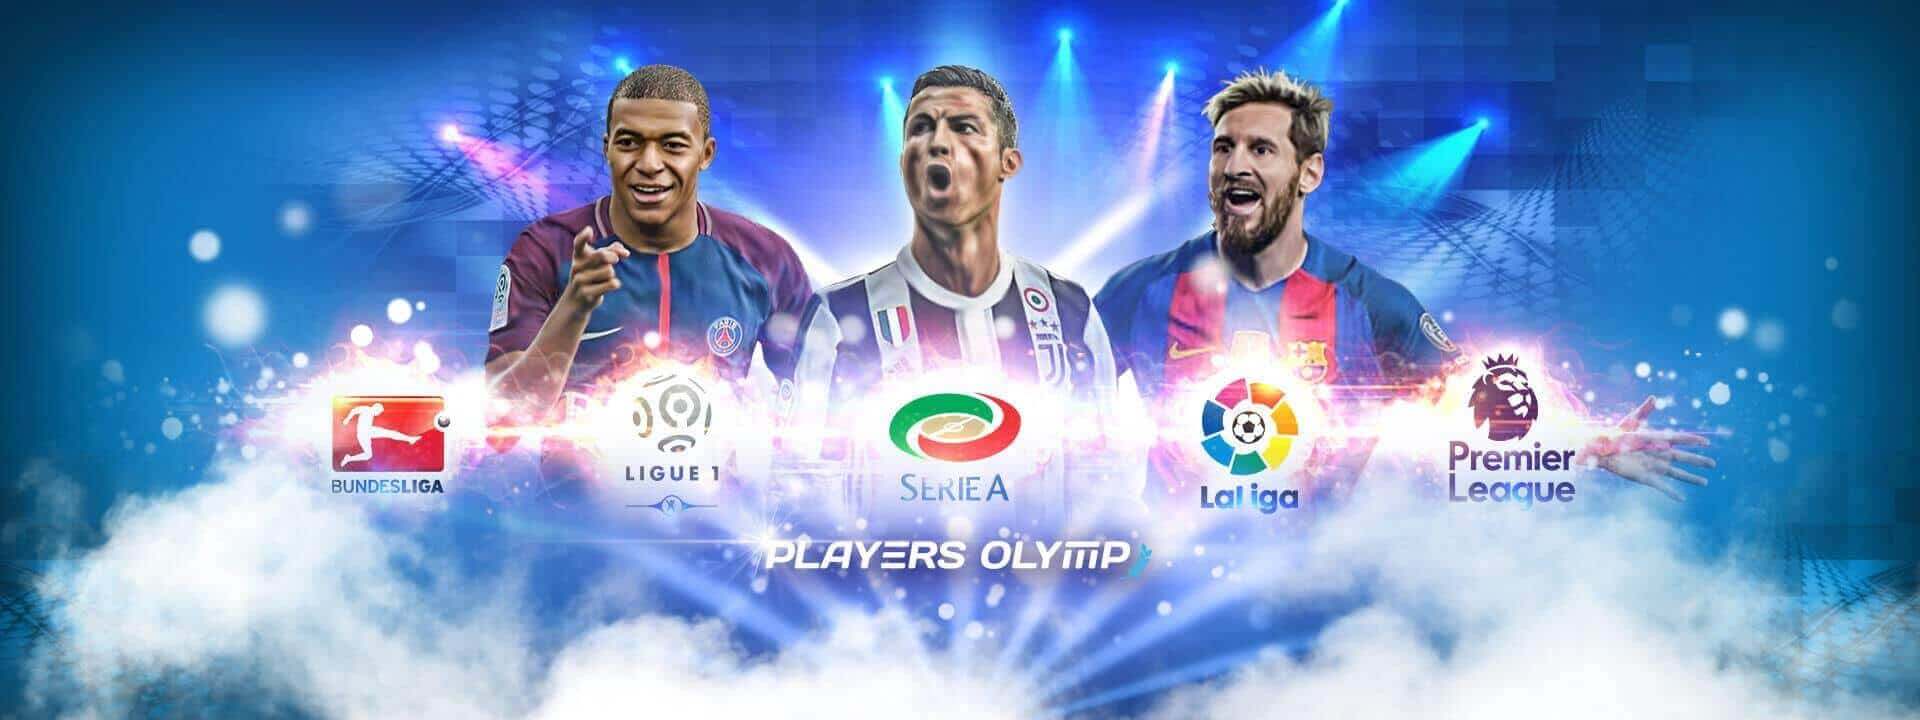 PLAYERS OLYMP